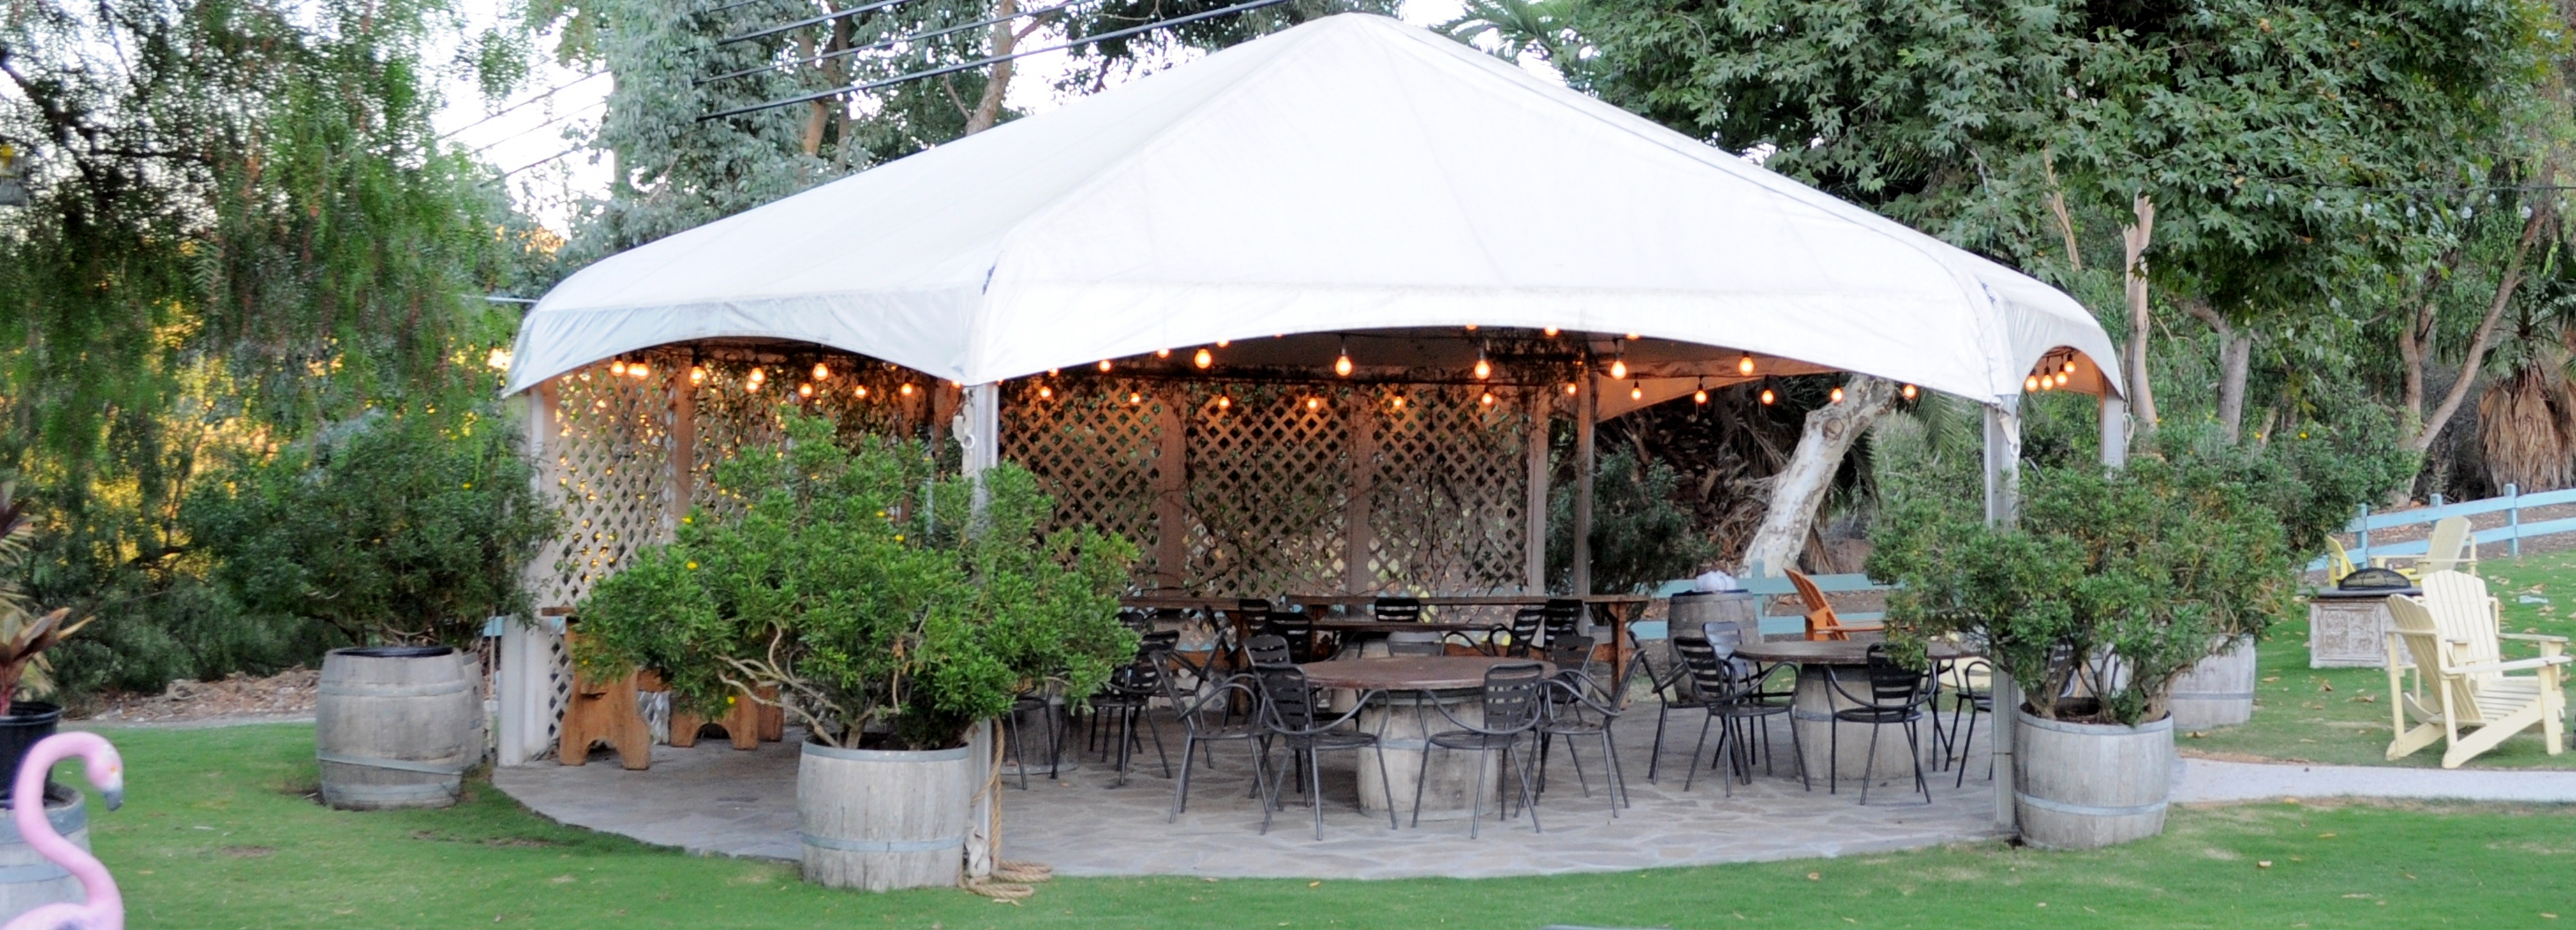 Gazebo - up to 35 guests